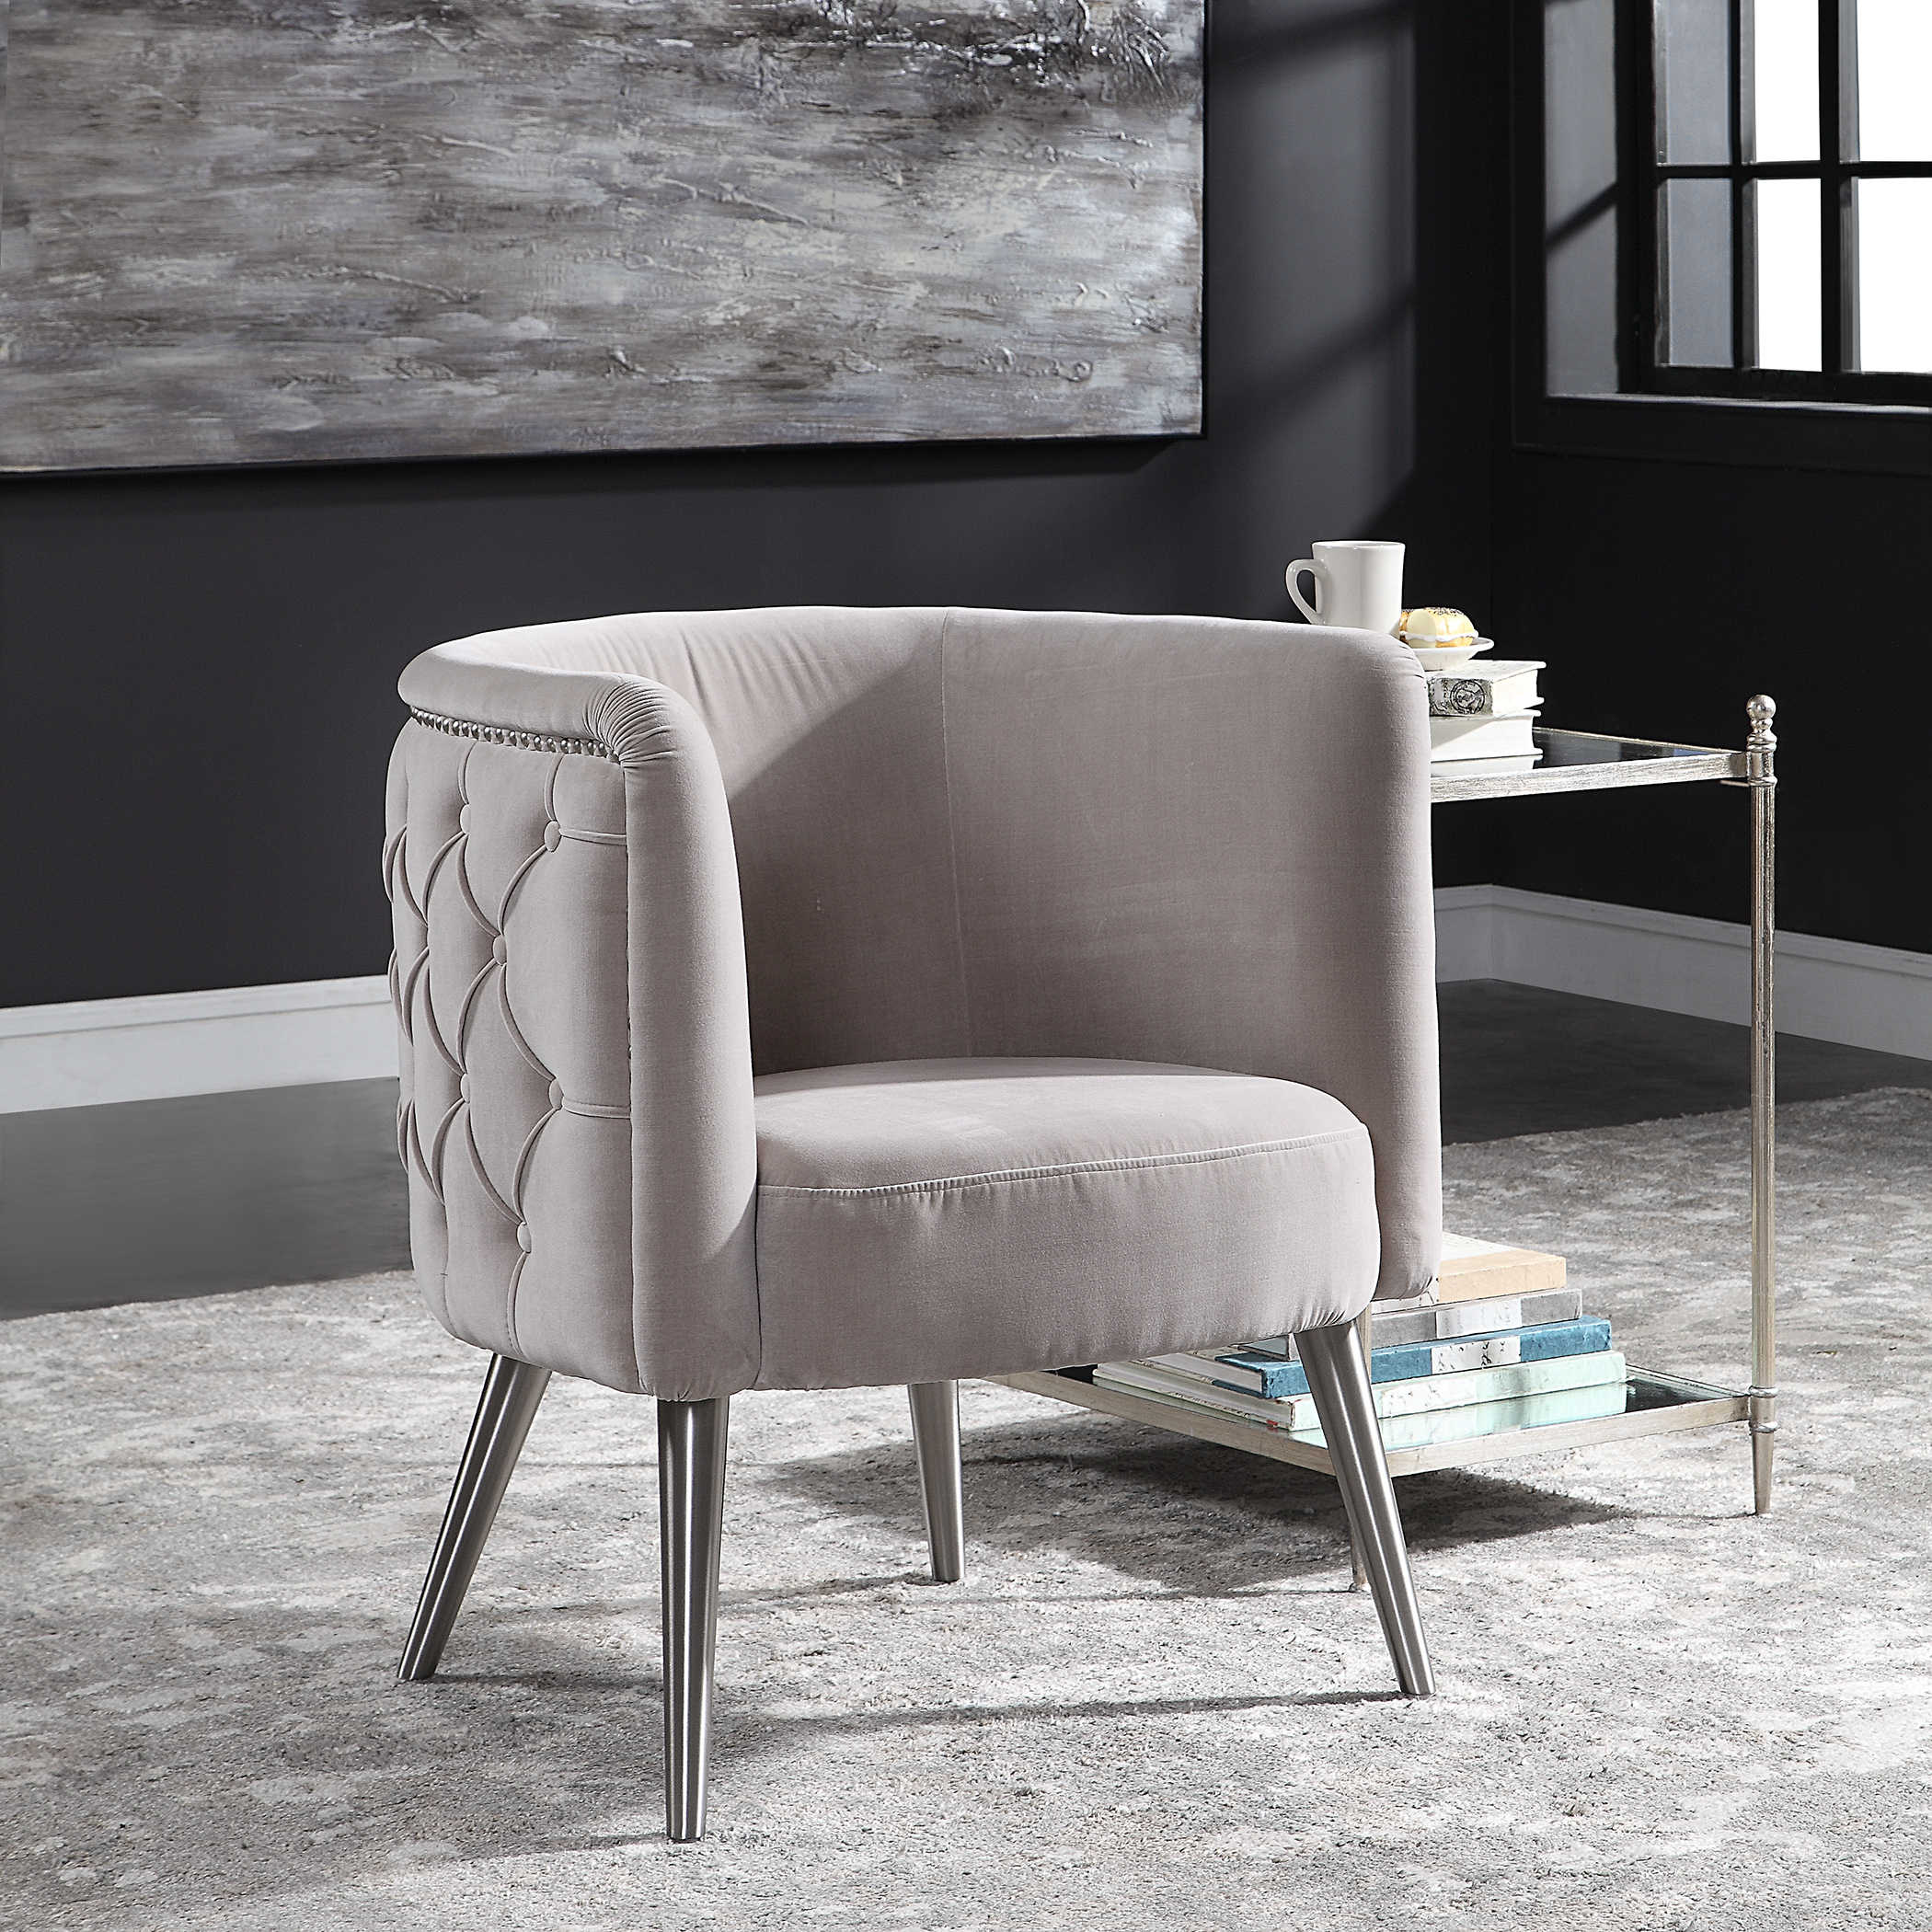 Champagne Army Metal Accent Chair: Uttermost Haider Tufted Accent Chair